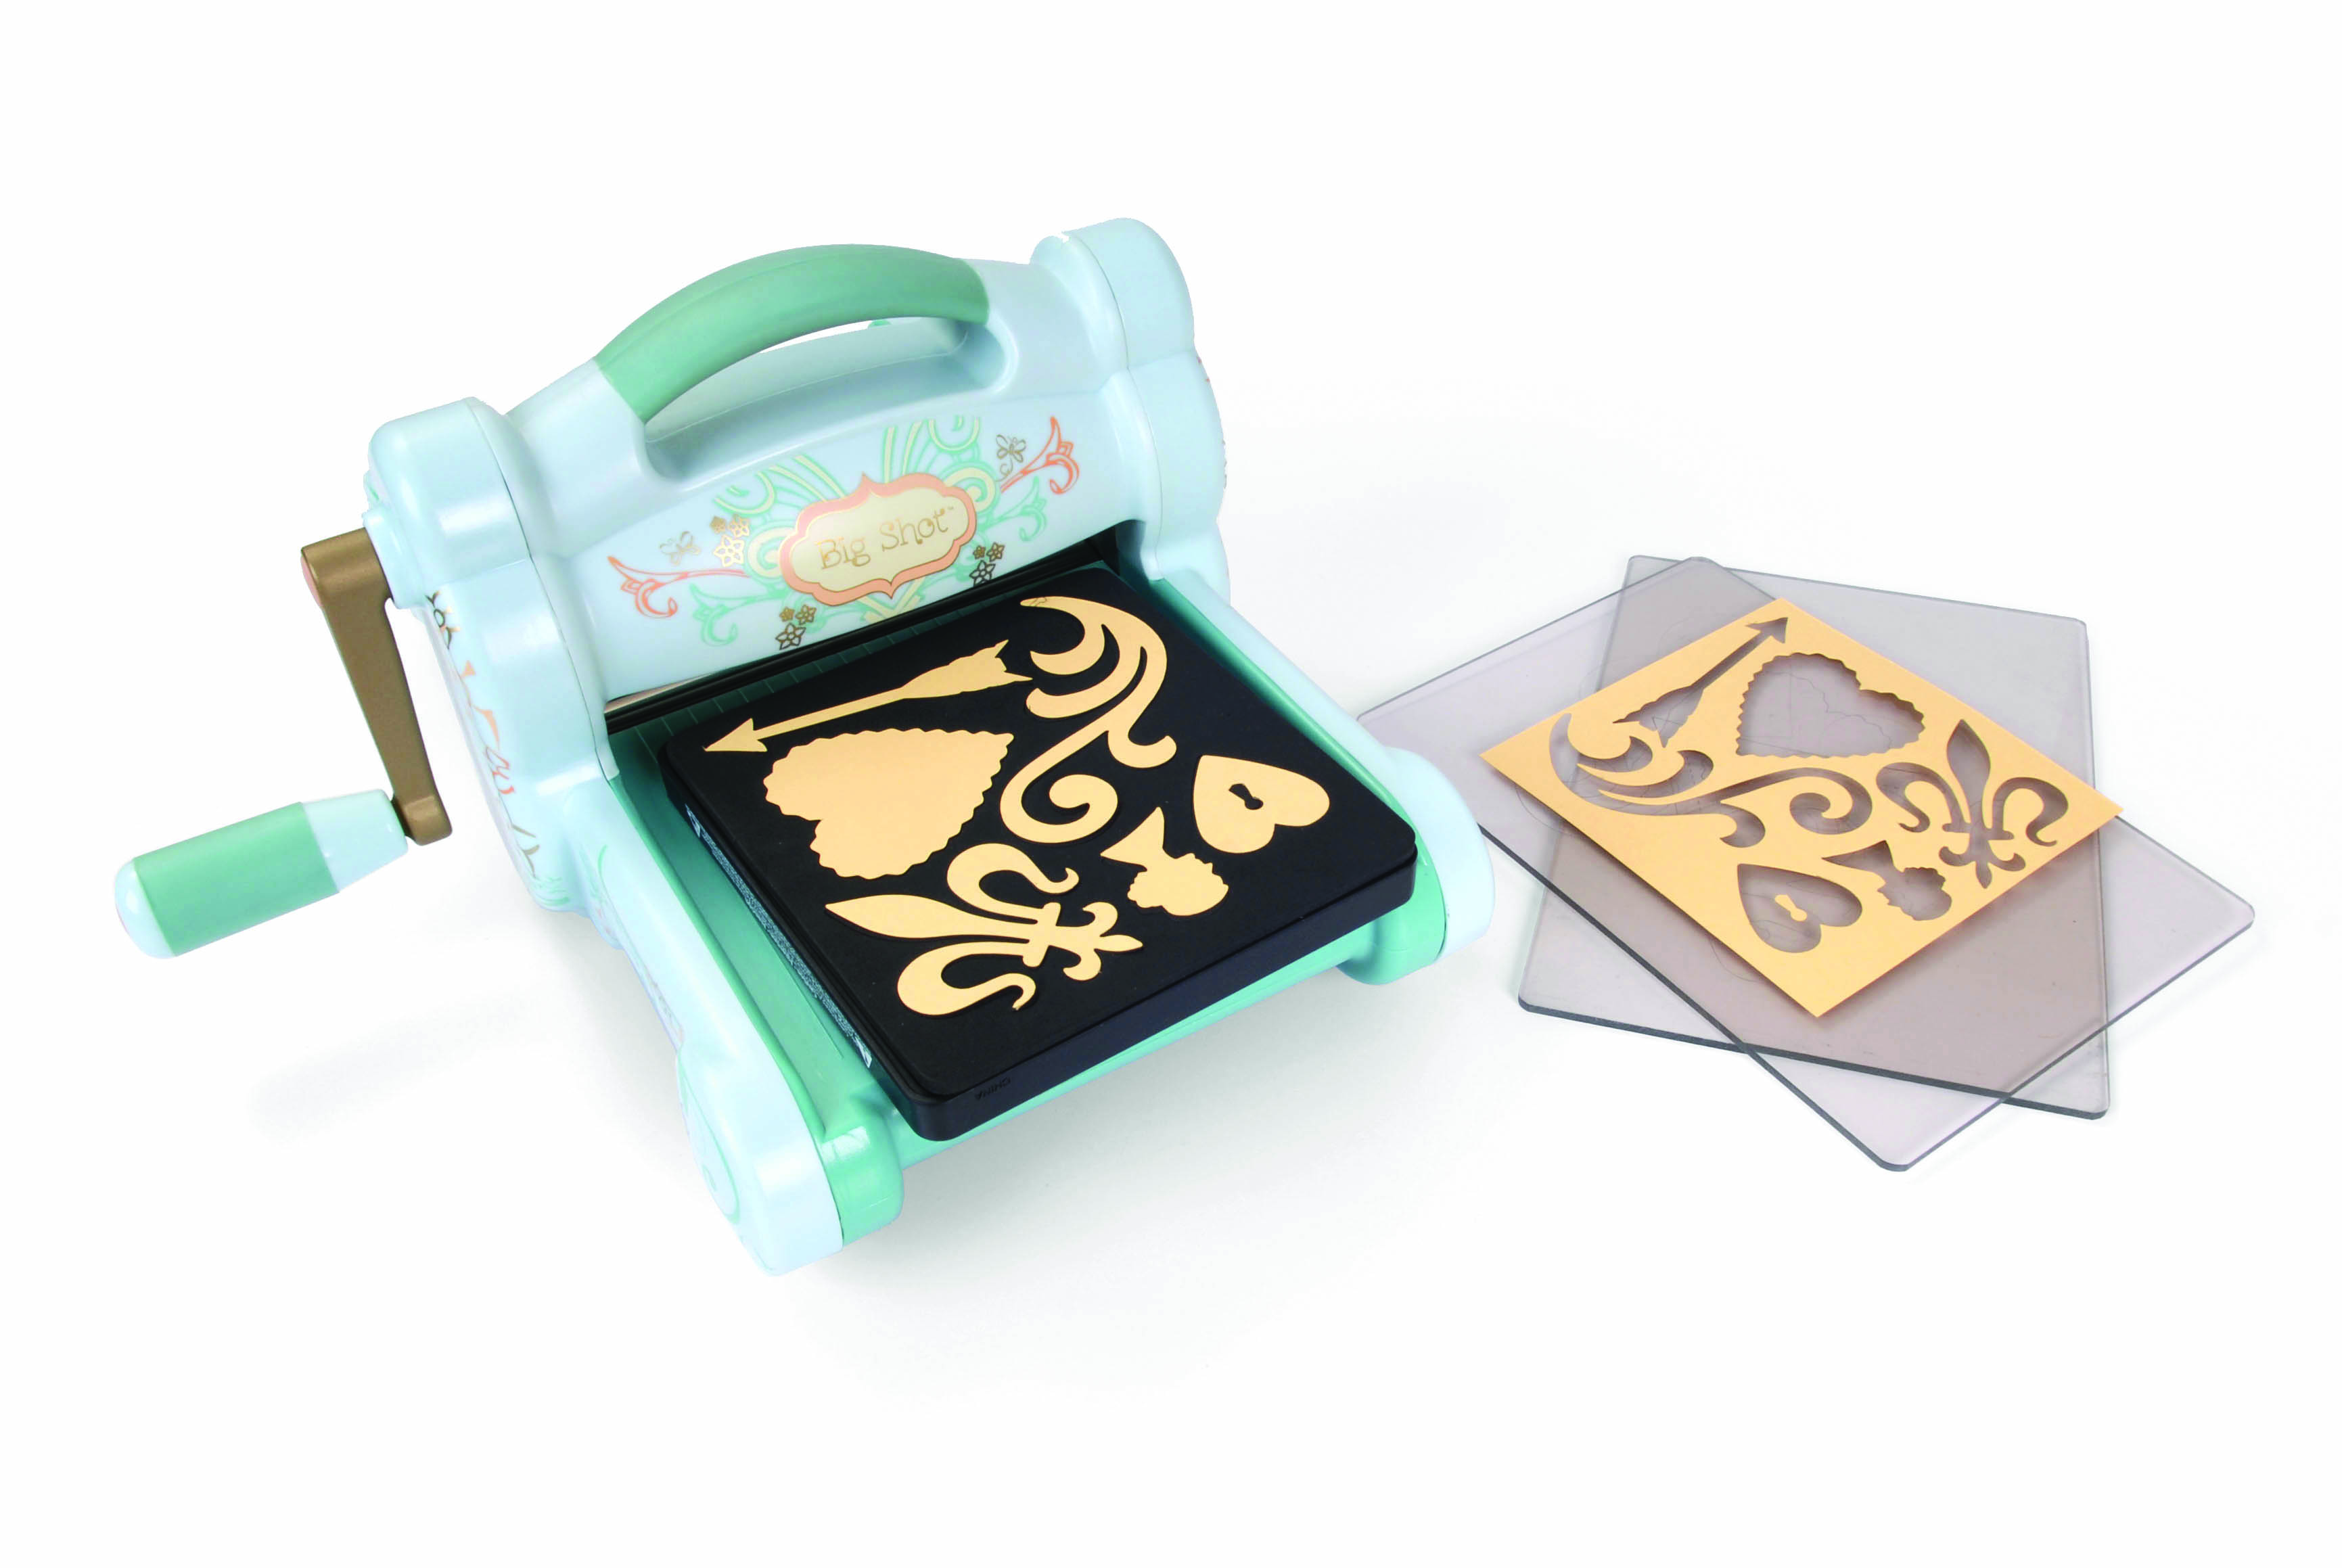 Sizzix To Showcase Big Shot Die Cutting Machine On